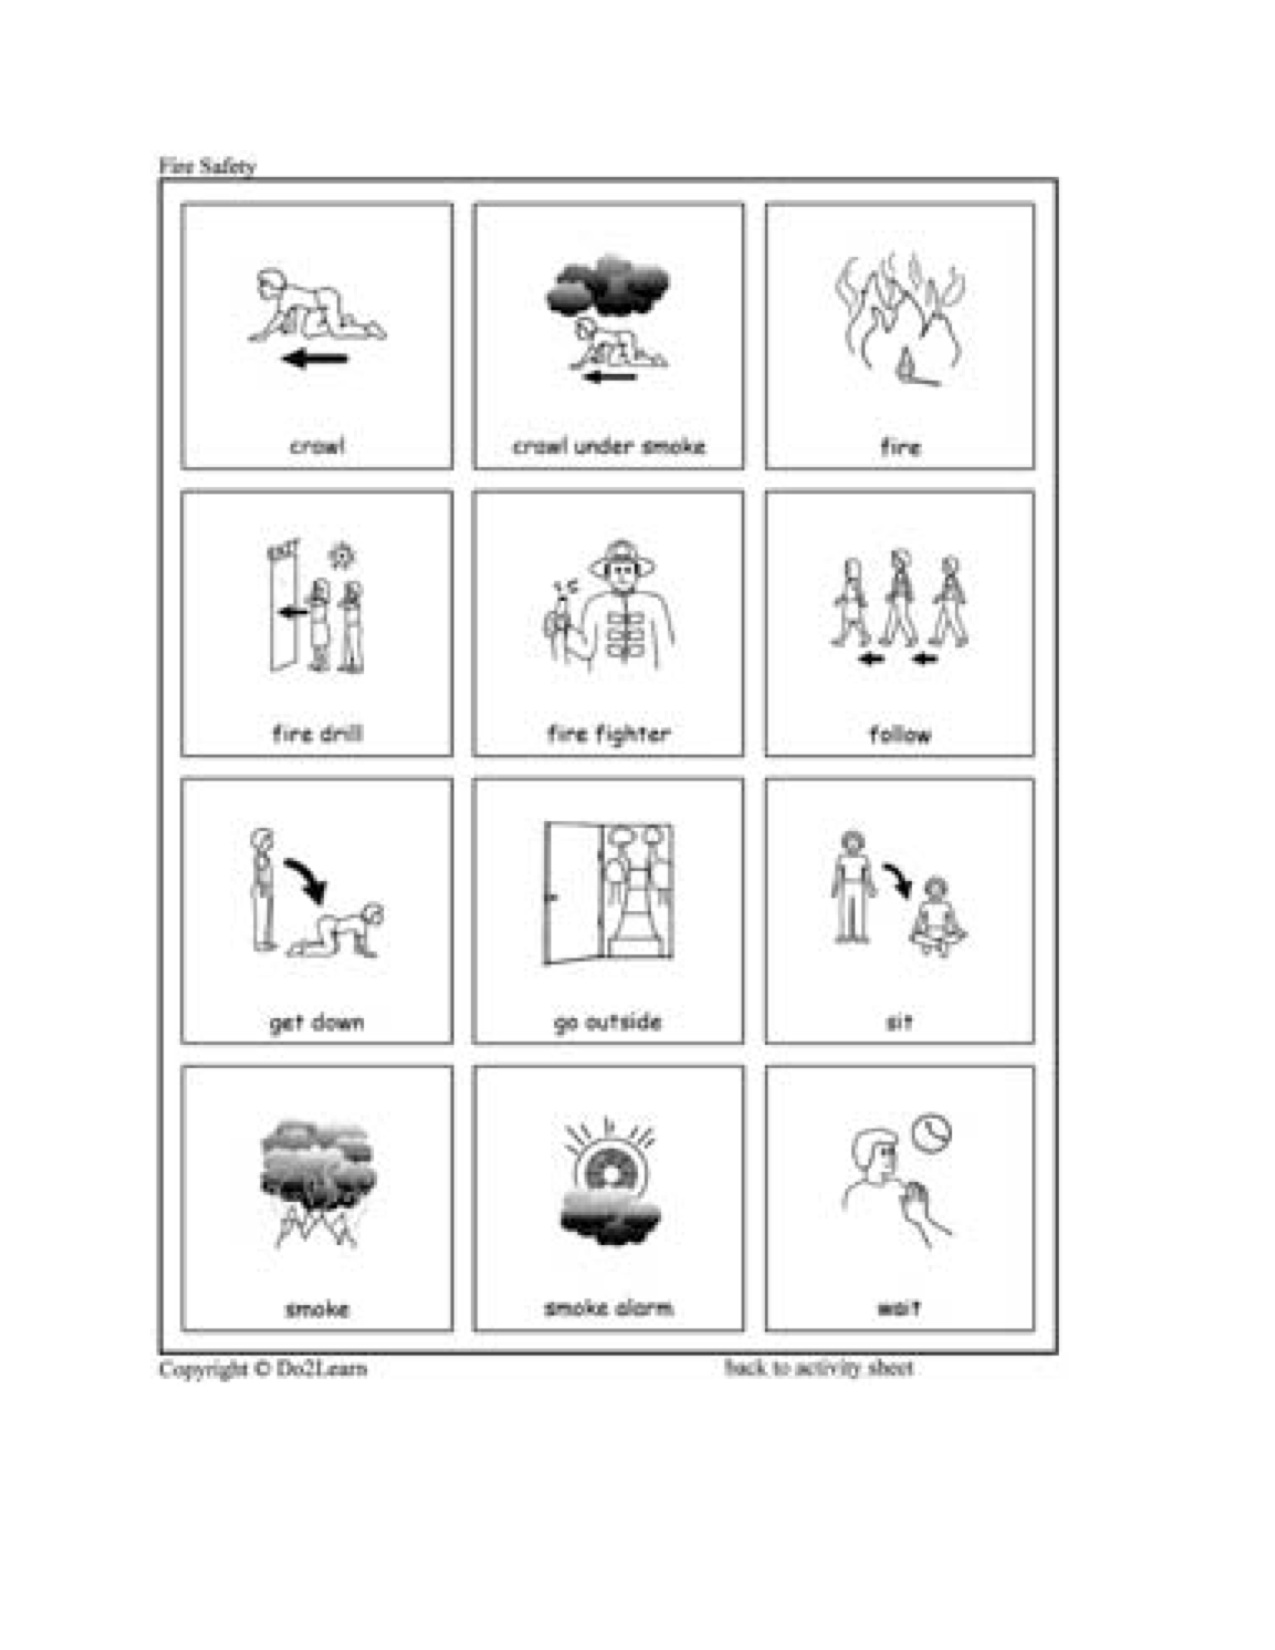 Worksheets Fire Safety Worksheets fire safety kindergarten nana picts